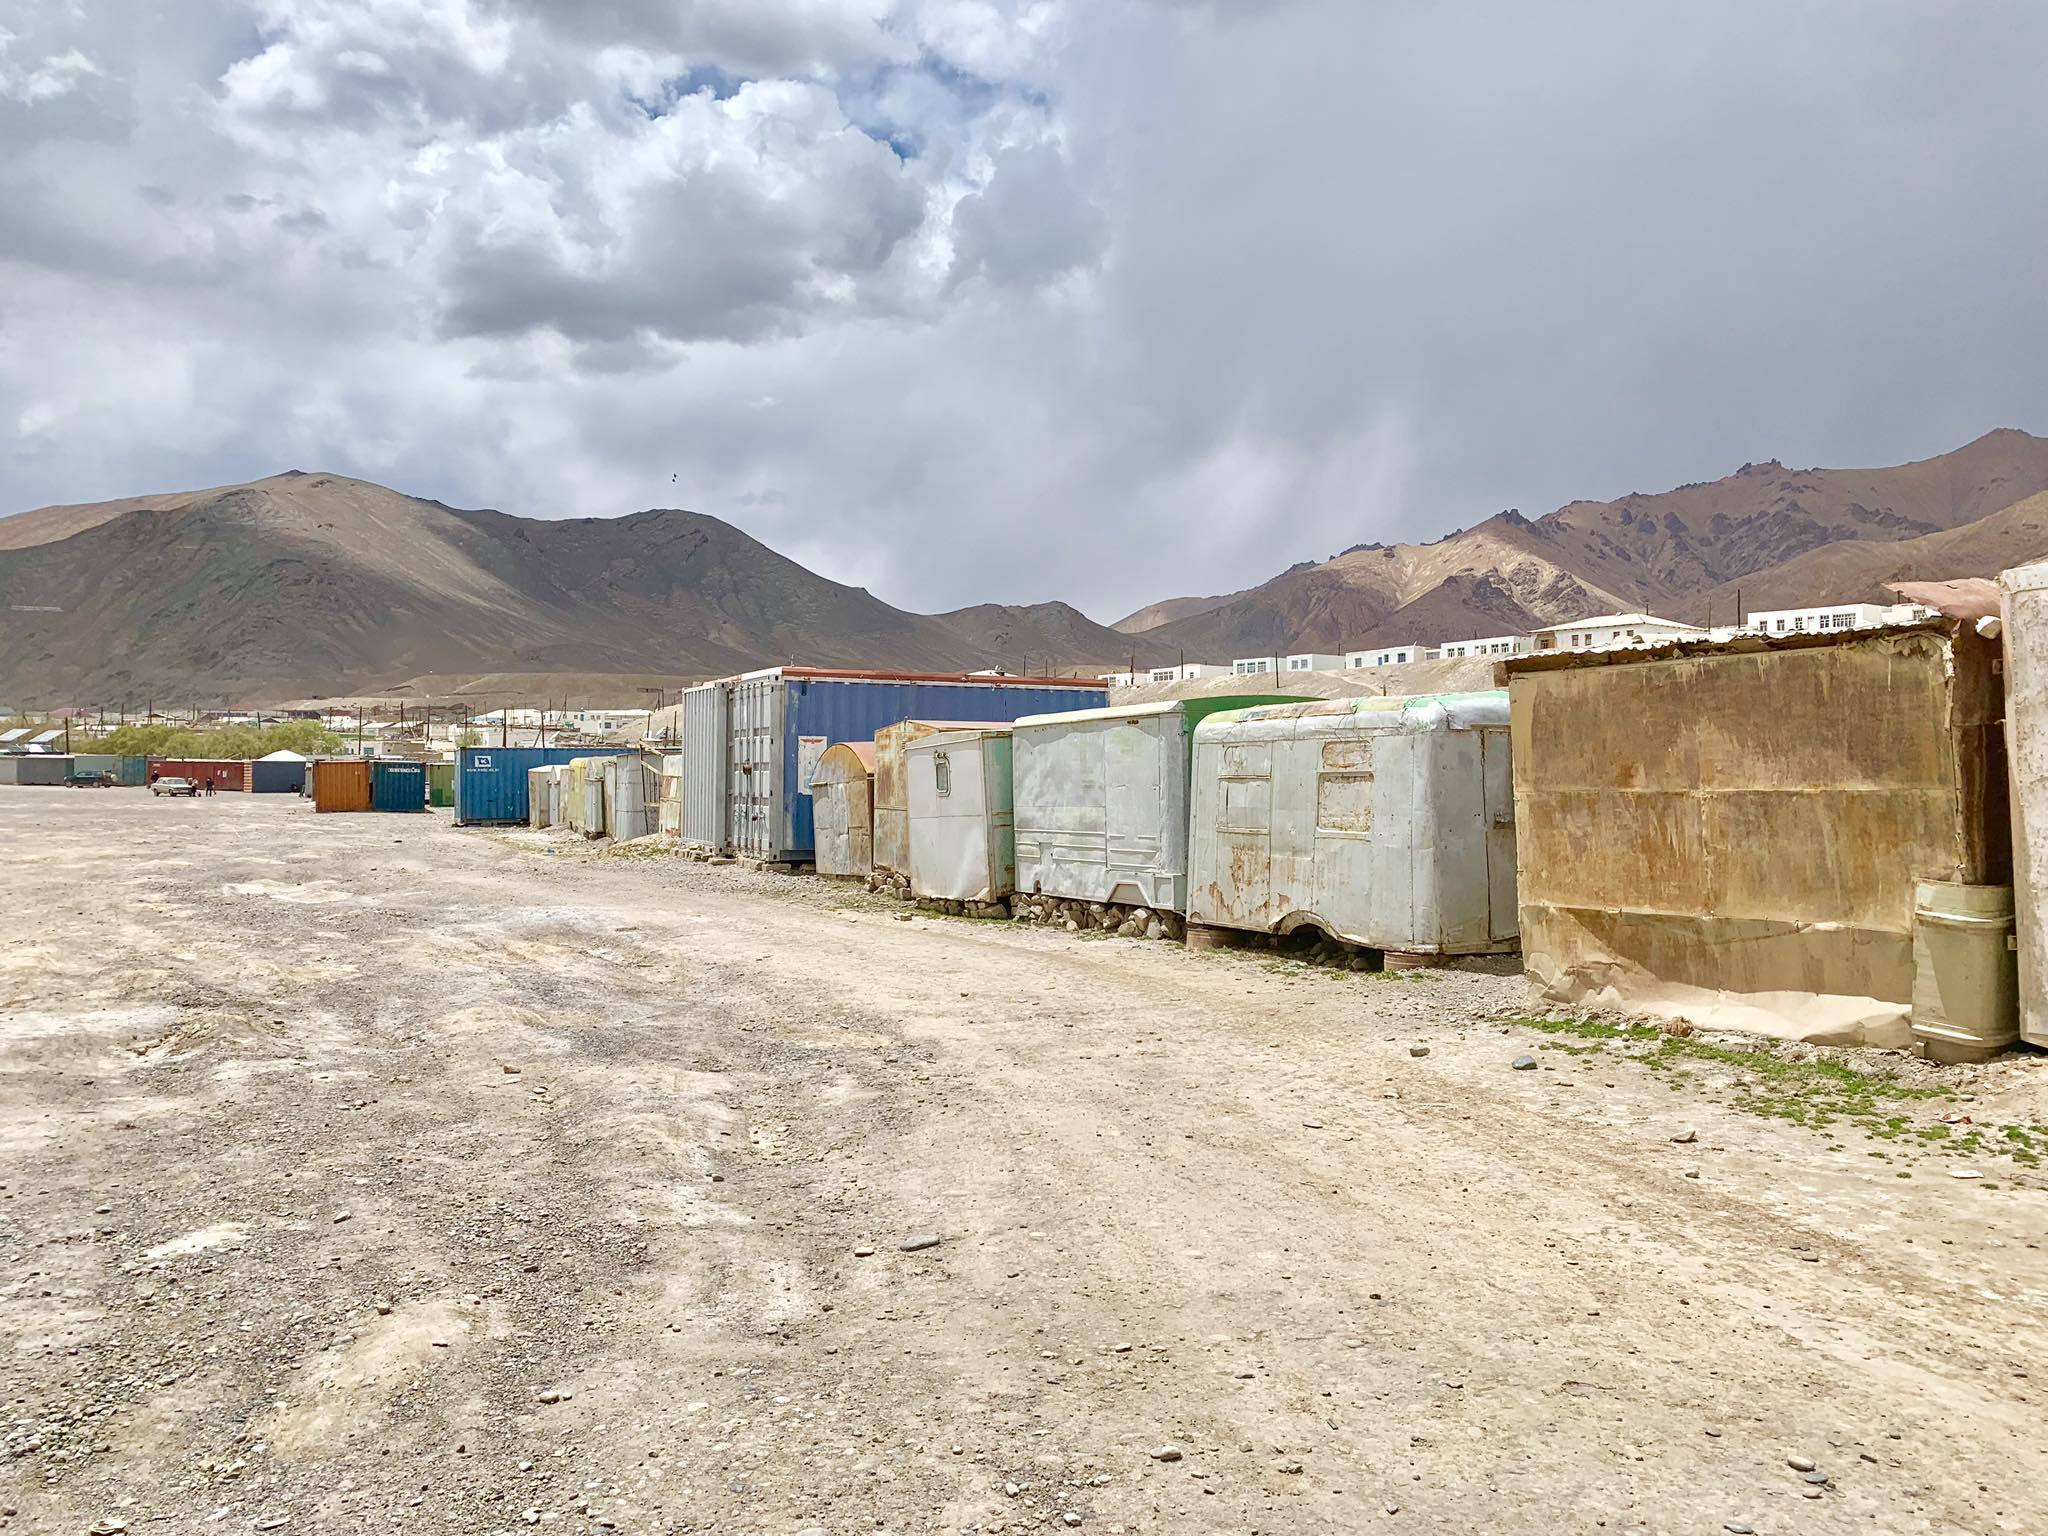 Kach Solo Travels in 2019 Our unexpected last stop during our Pamir Highway Roadtrip17.jpg